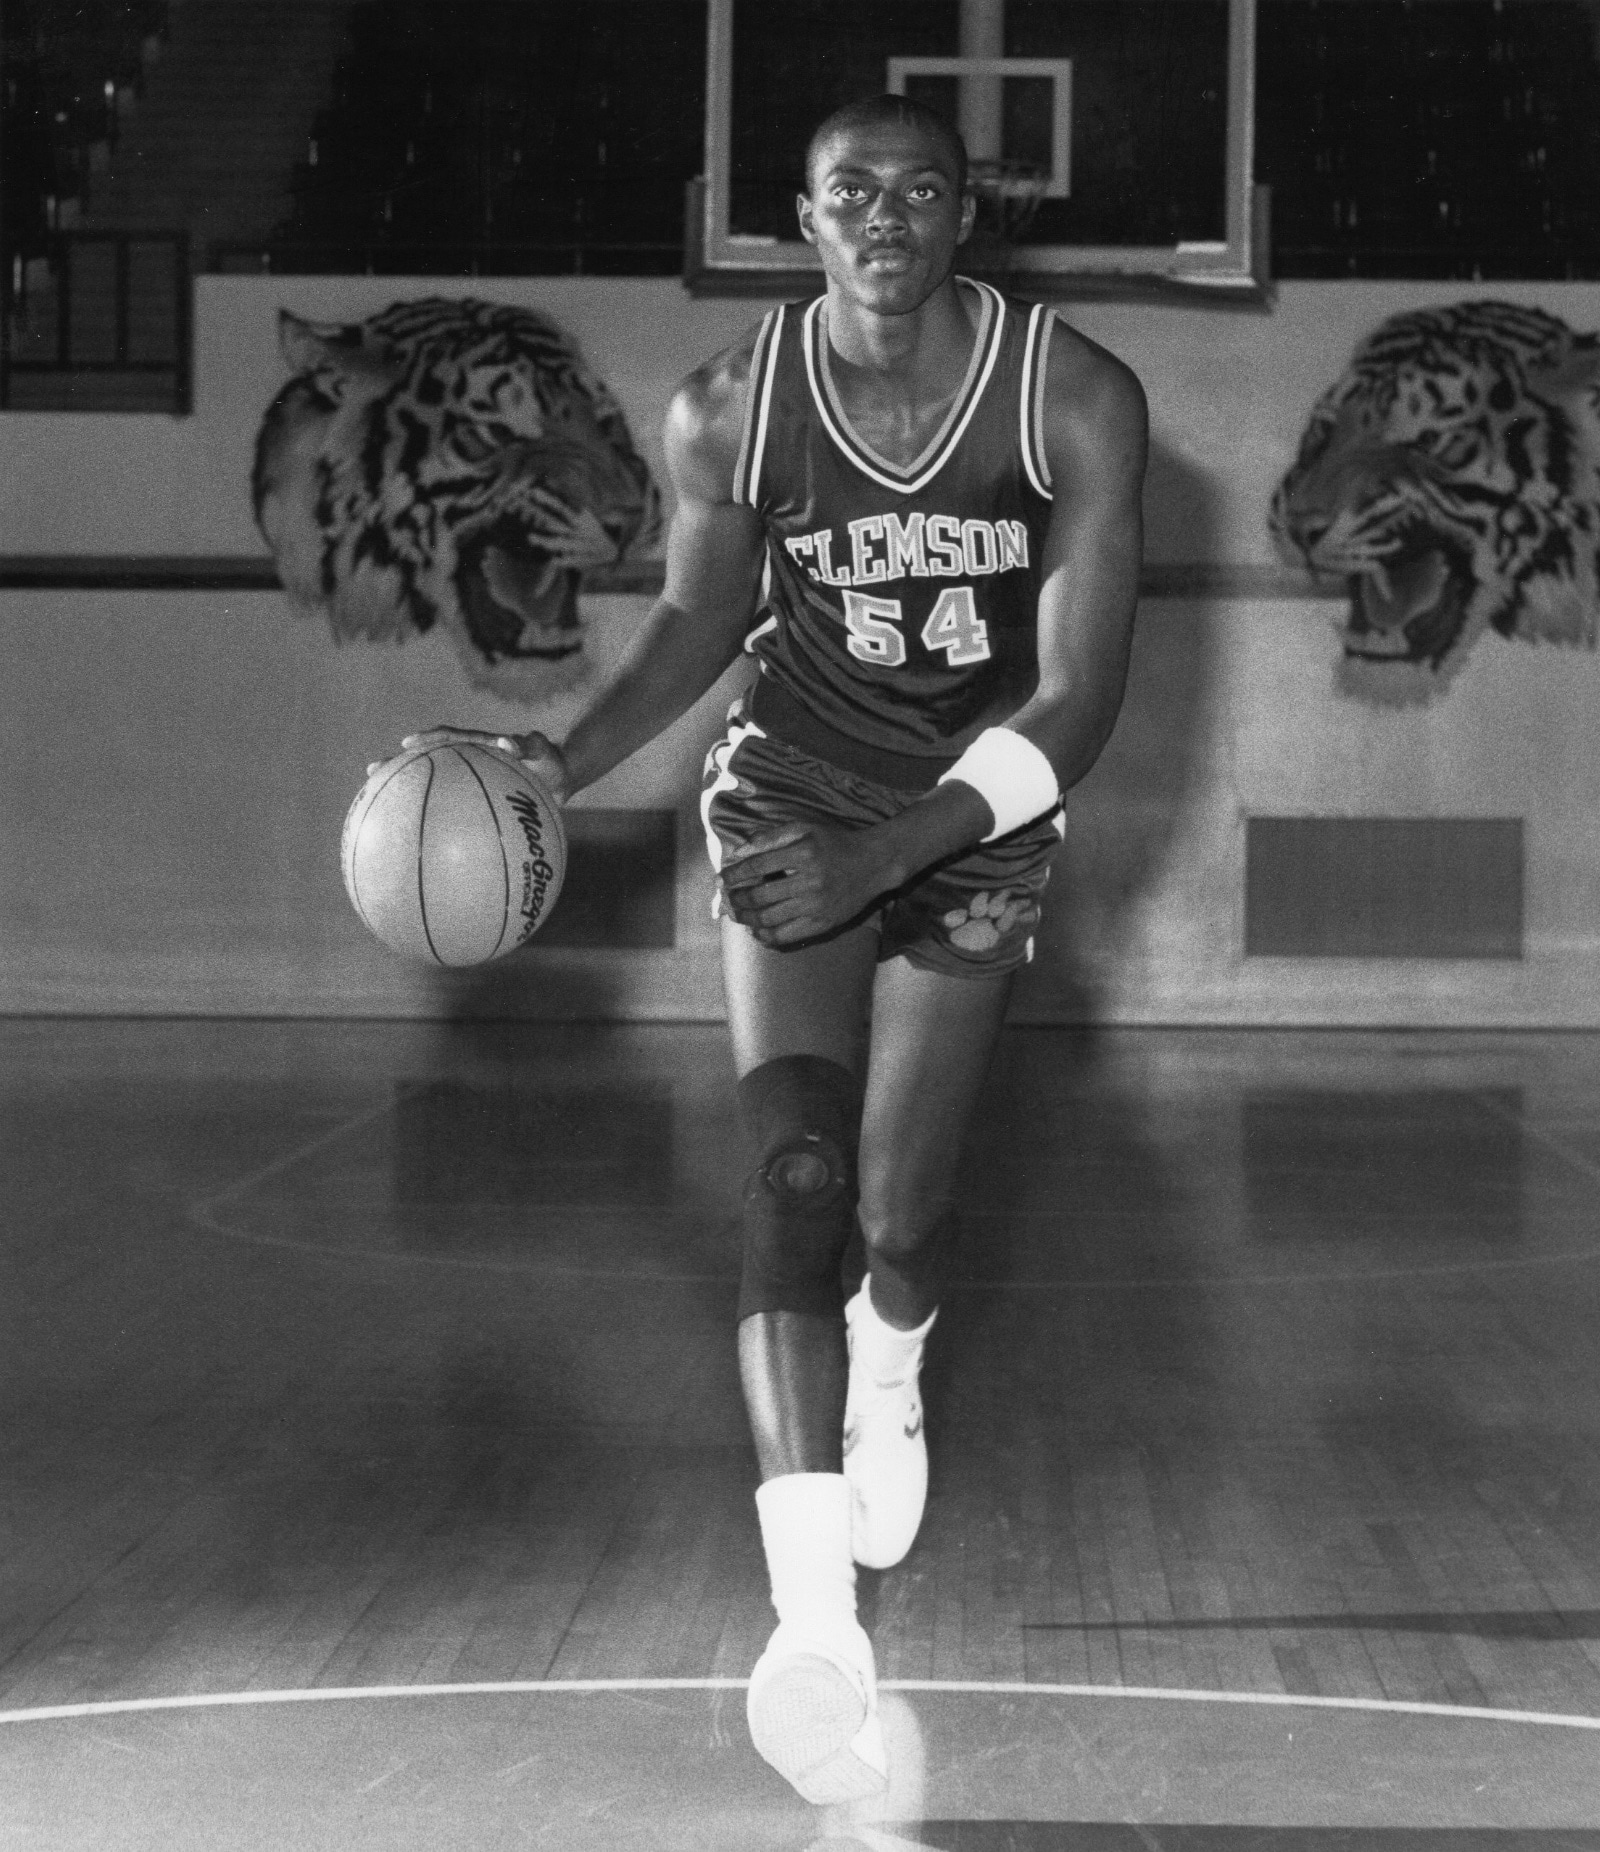 A young Horace Grant playing for Clemson University